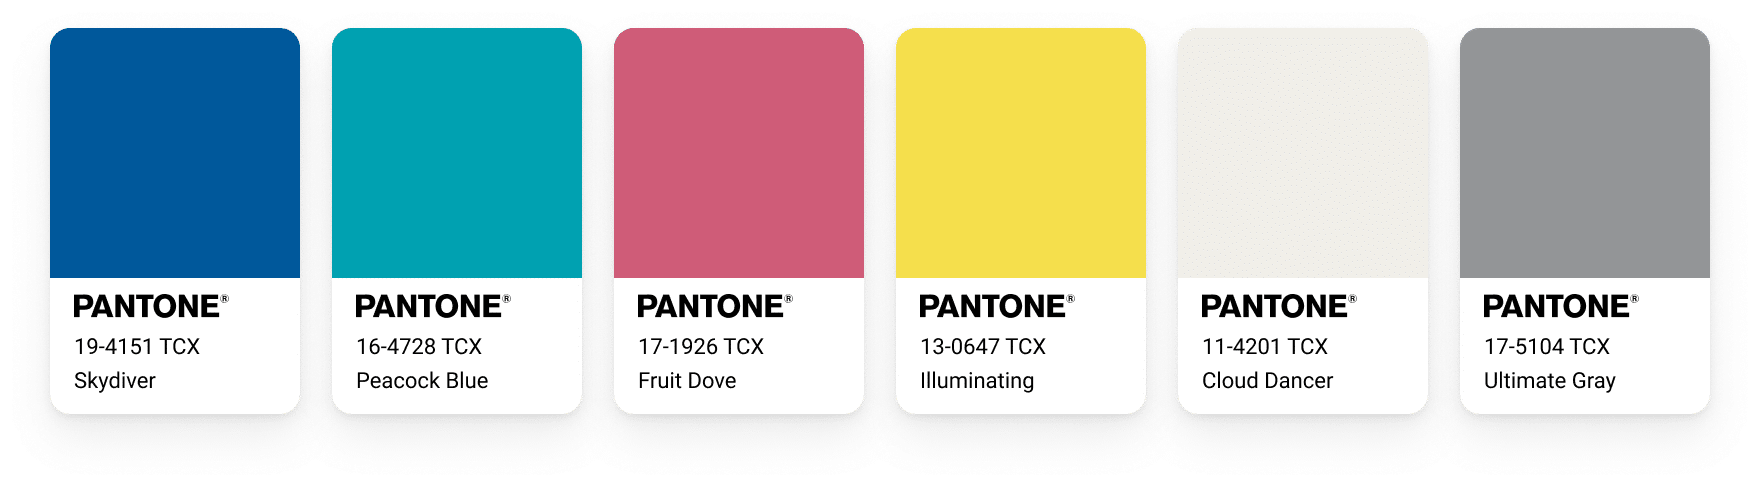 The Aviari Palette including a blue, a turquoise, a redish/pinkish color, the illuminating yellow, the gray and a very light beige color